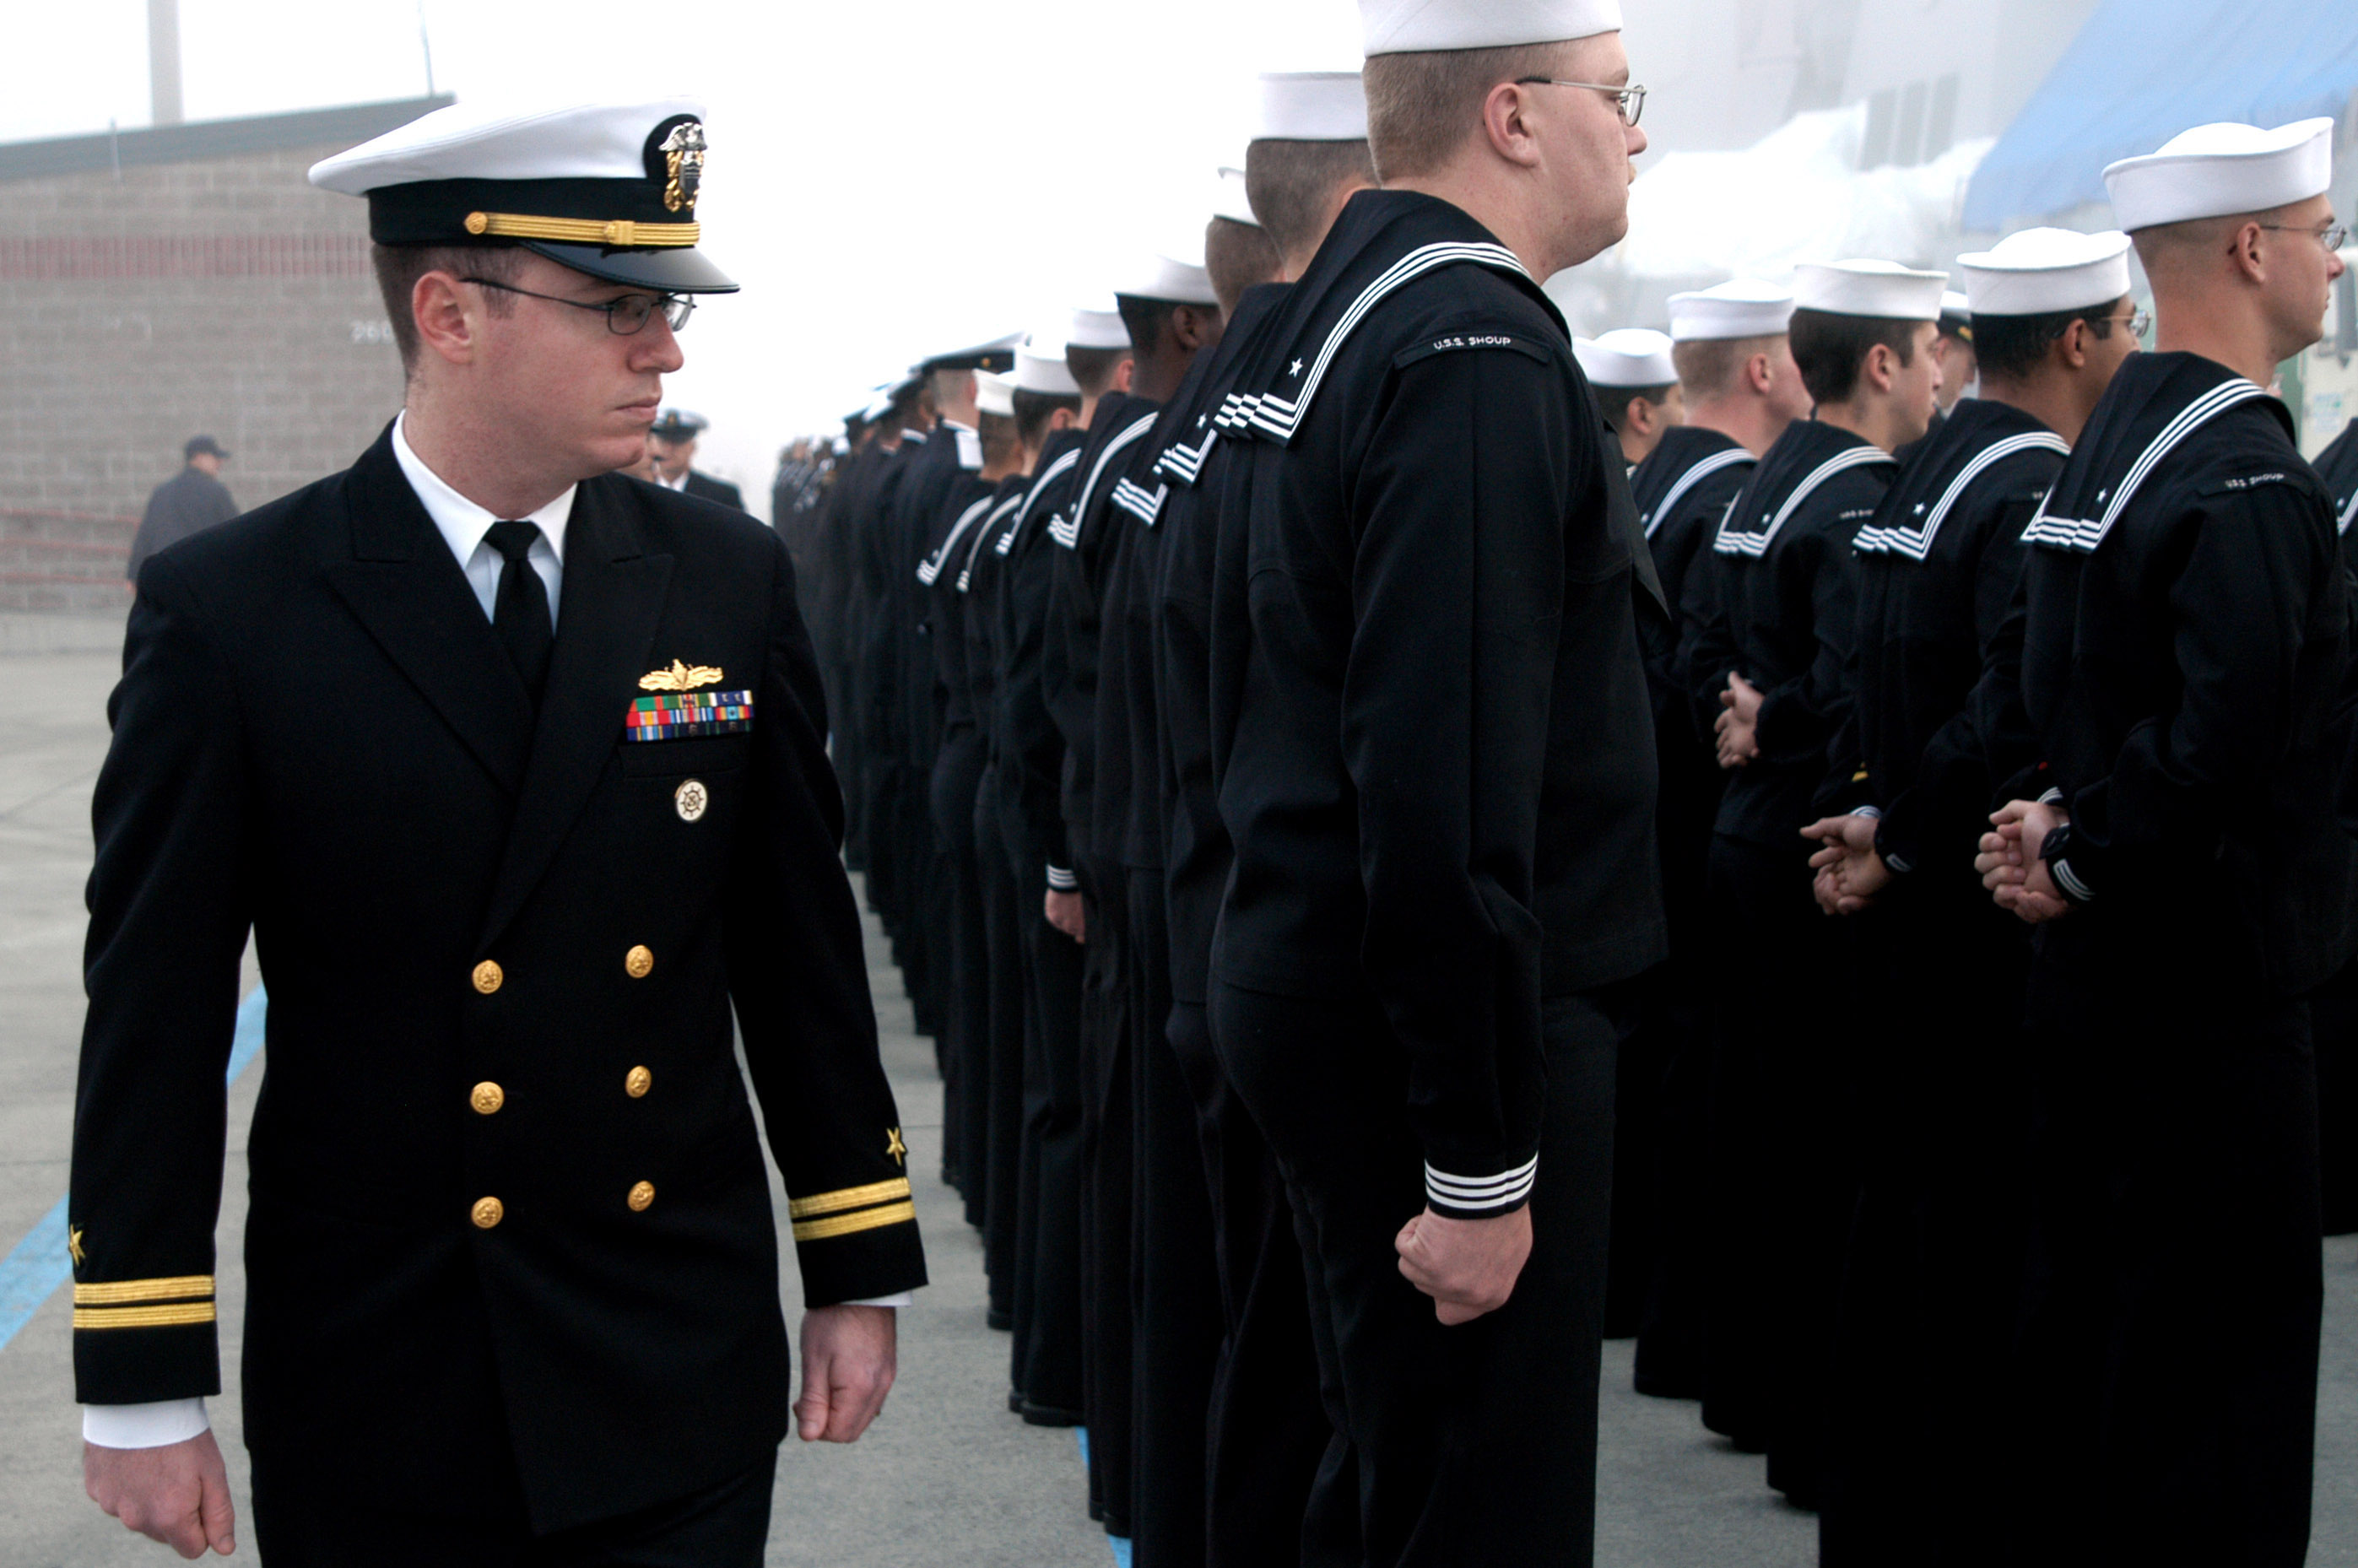 Navy Enlisted Uniforms File:US Navy 04...